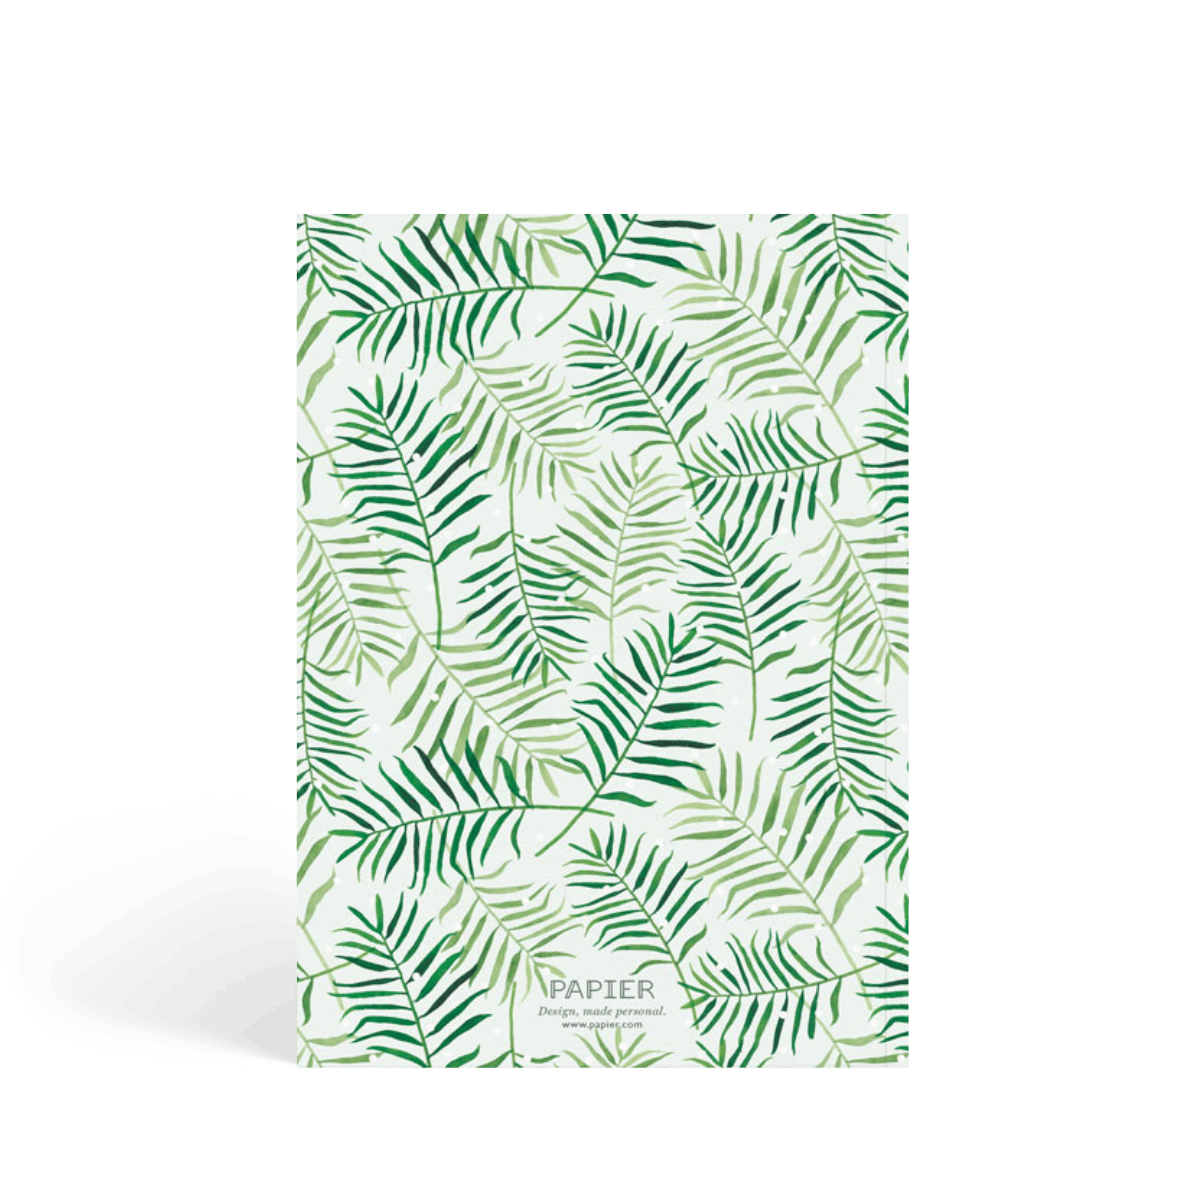 Https%3a%2f%2fwww.papier.com%2fproduct image%2f36304%2f5%2fpalm leaves 9117 back 1523999400.png?ixlib=rb 1.1